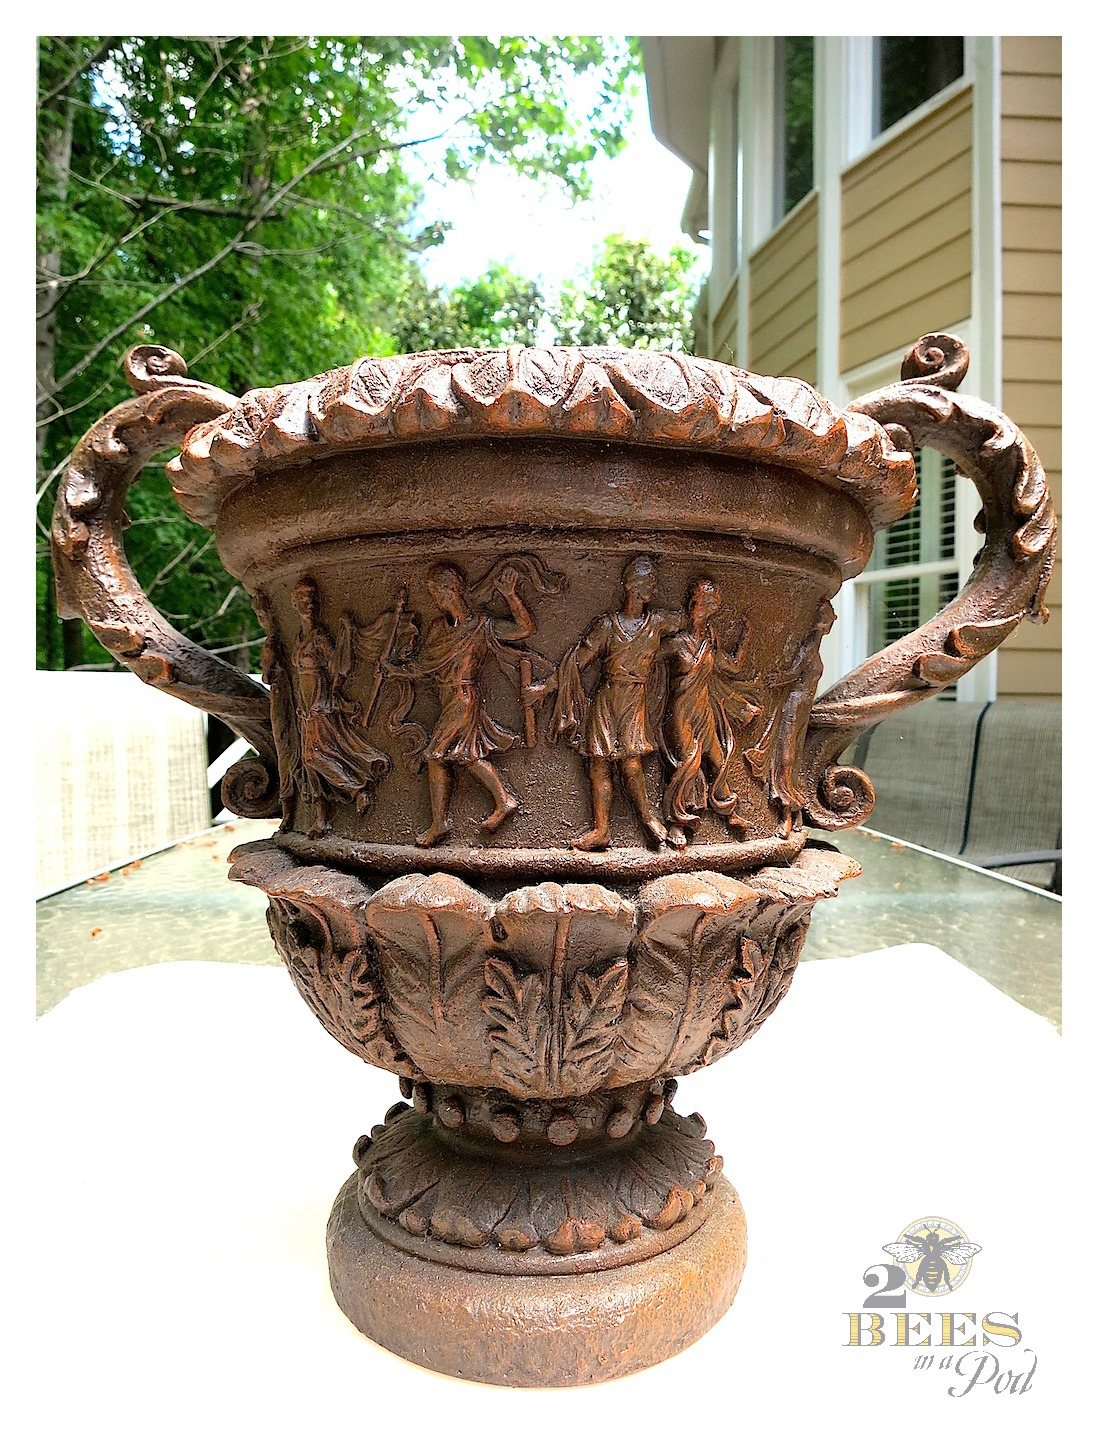 Chalk painted decorative urn. Chalk Paint a resin or plastic vase and make it look like vintage plaster.